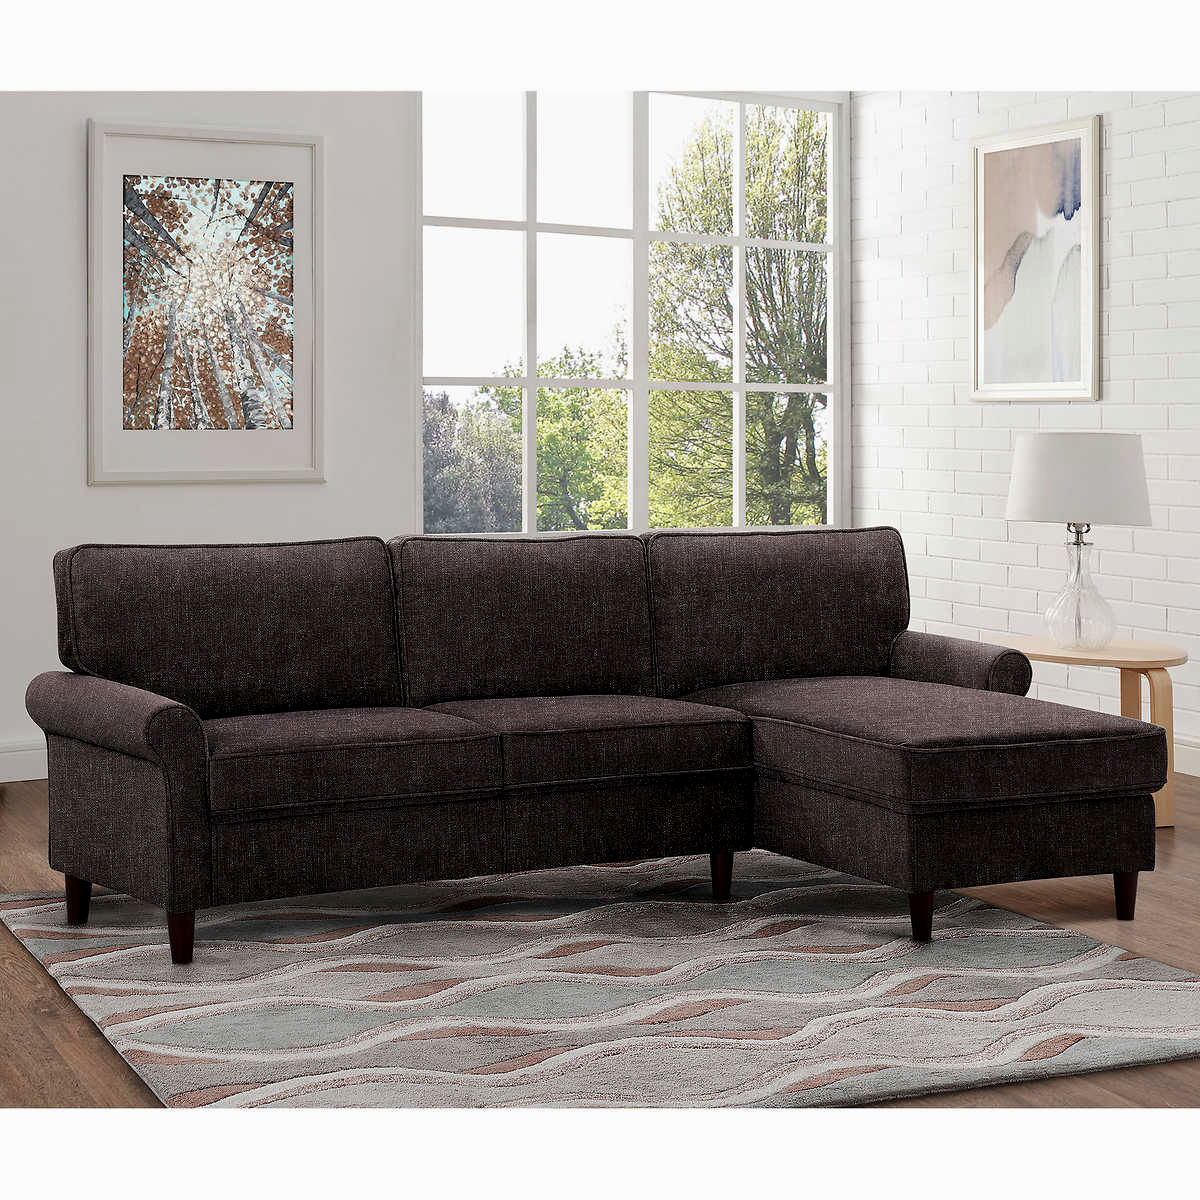 elegant cheap sectional sofas under 400 decoration-Superb Cheap Sectional sofas Under 400 Design